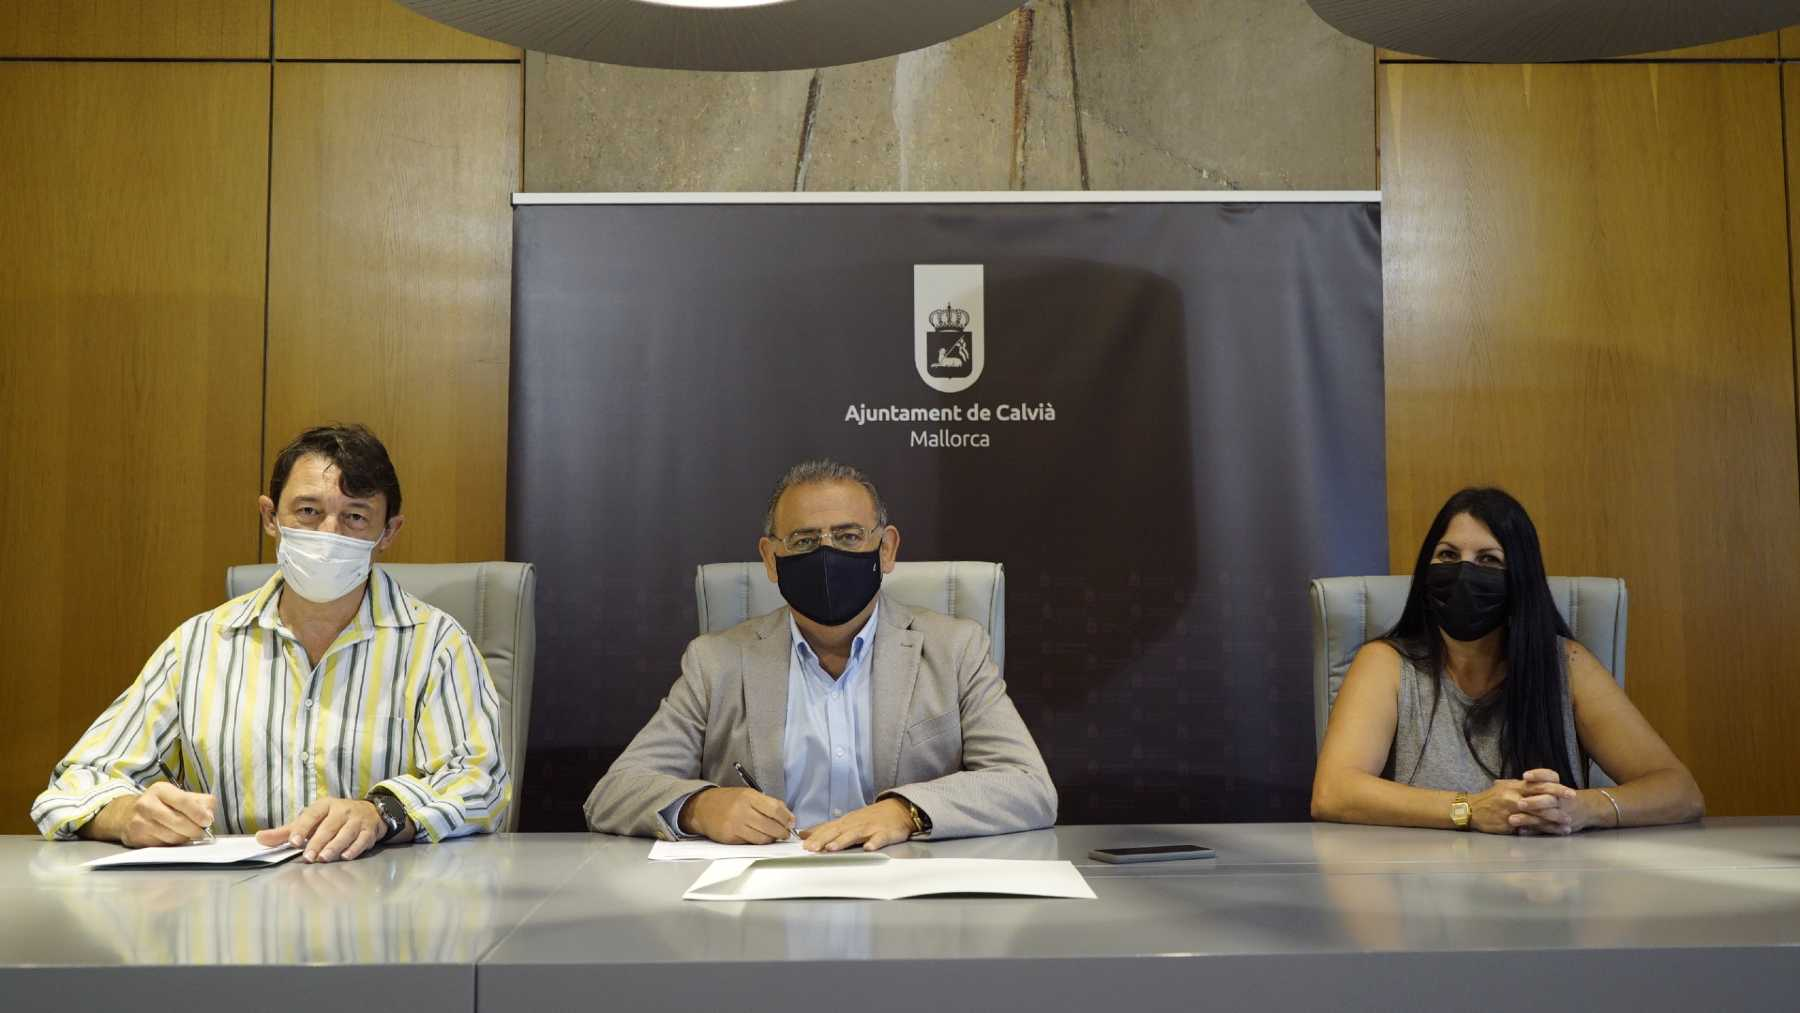 Calvià signs an agreement with hoteliers to promote the municipality in low season